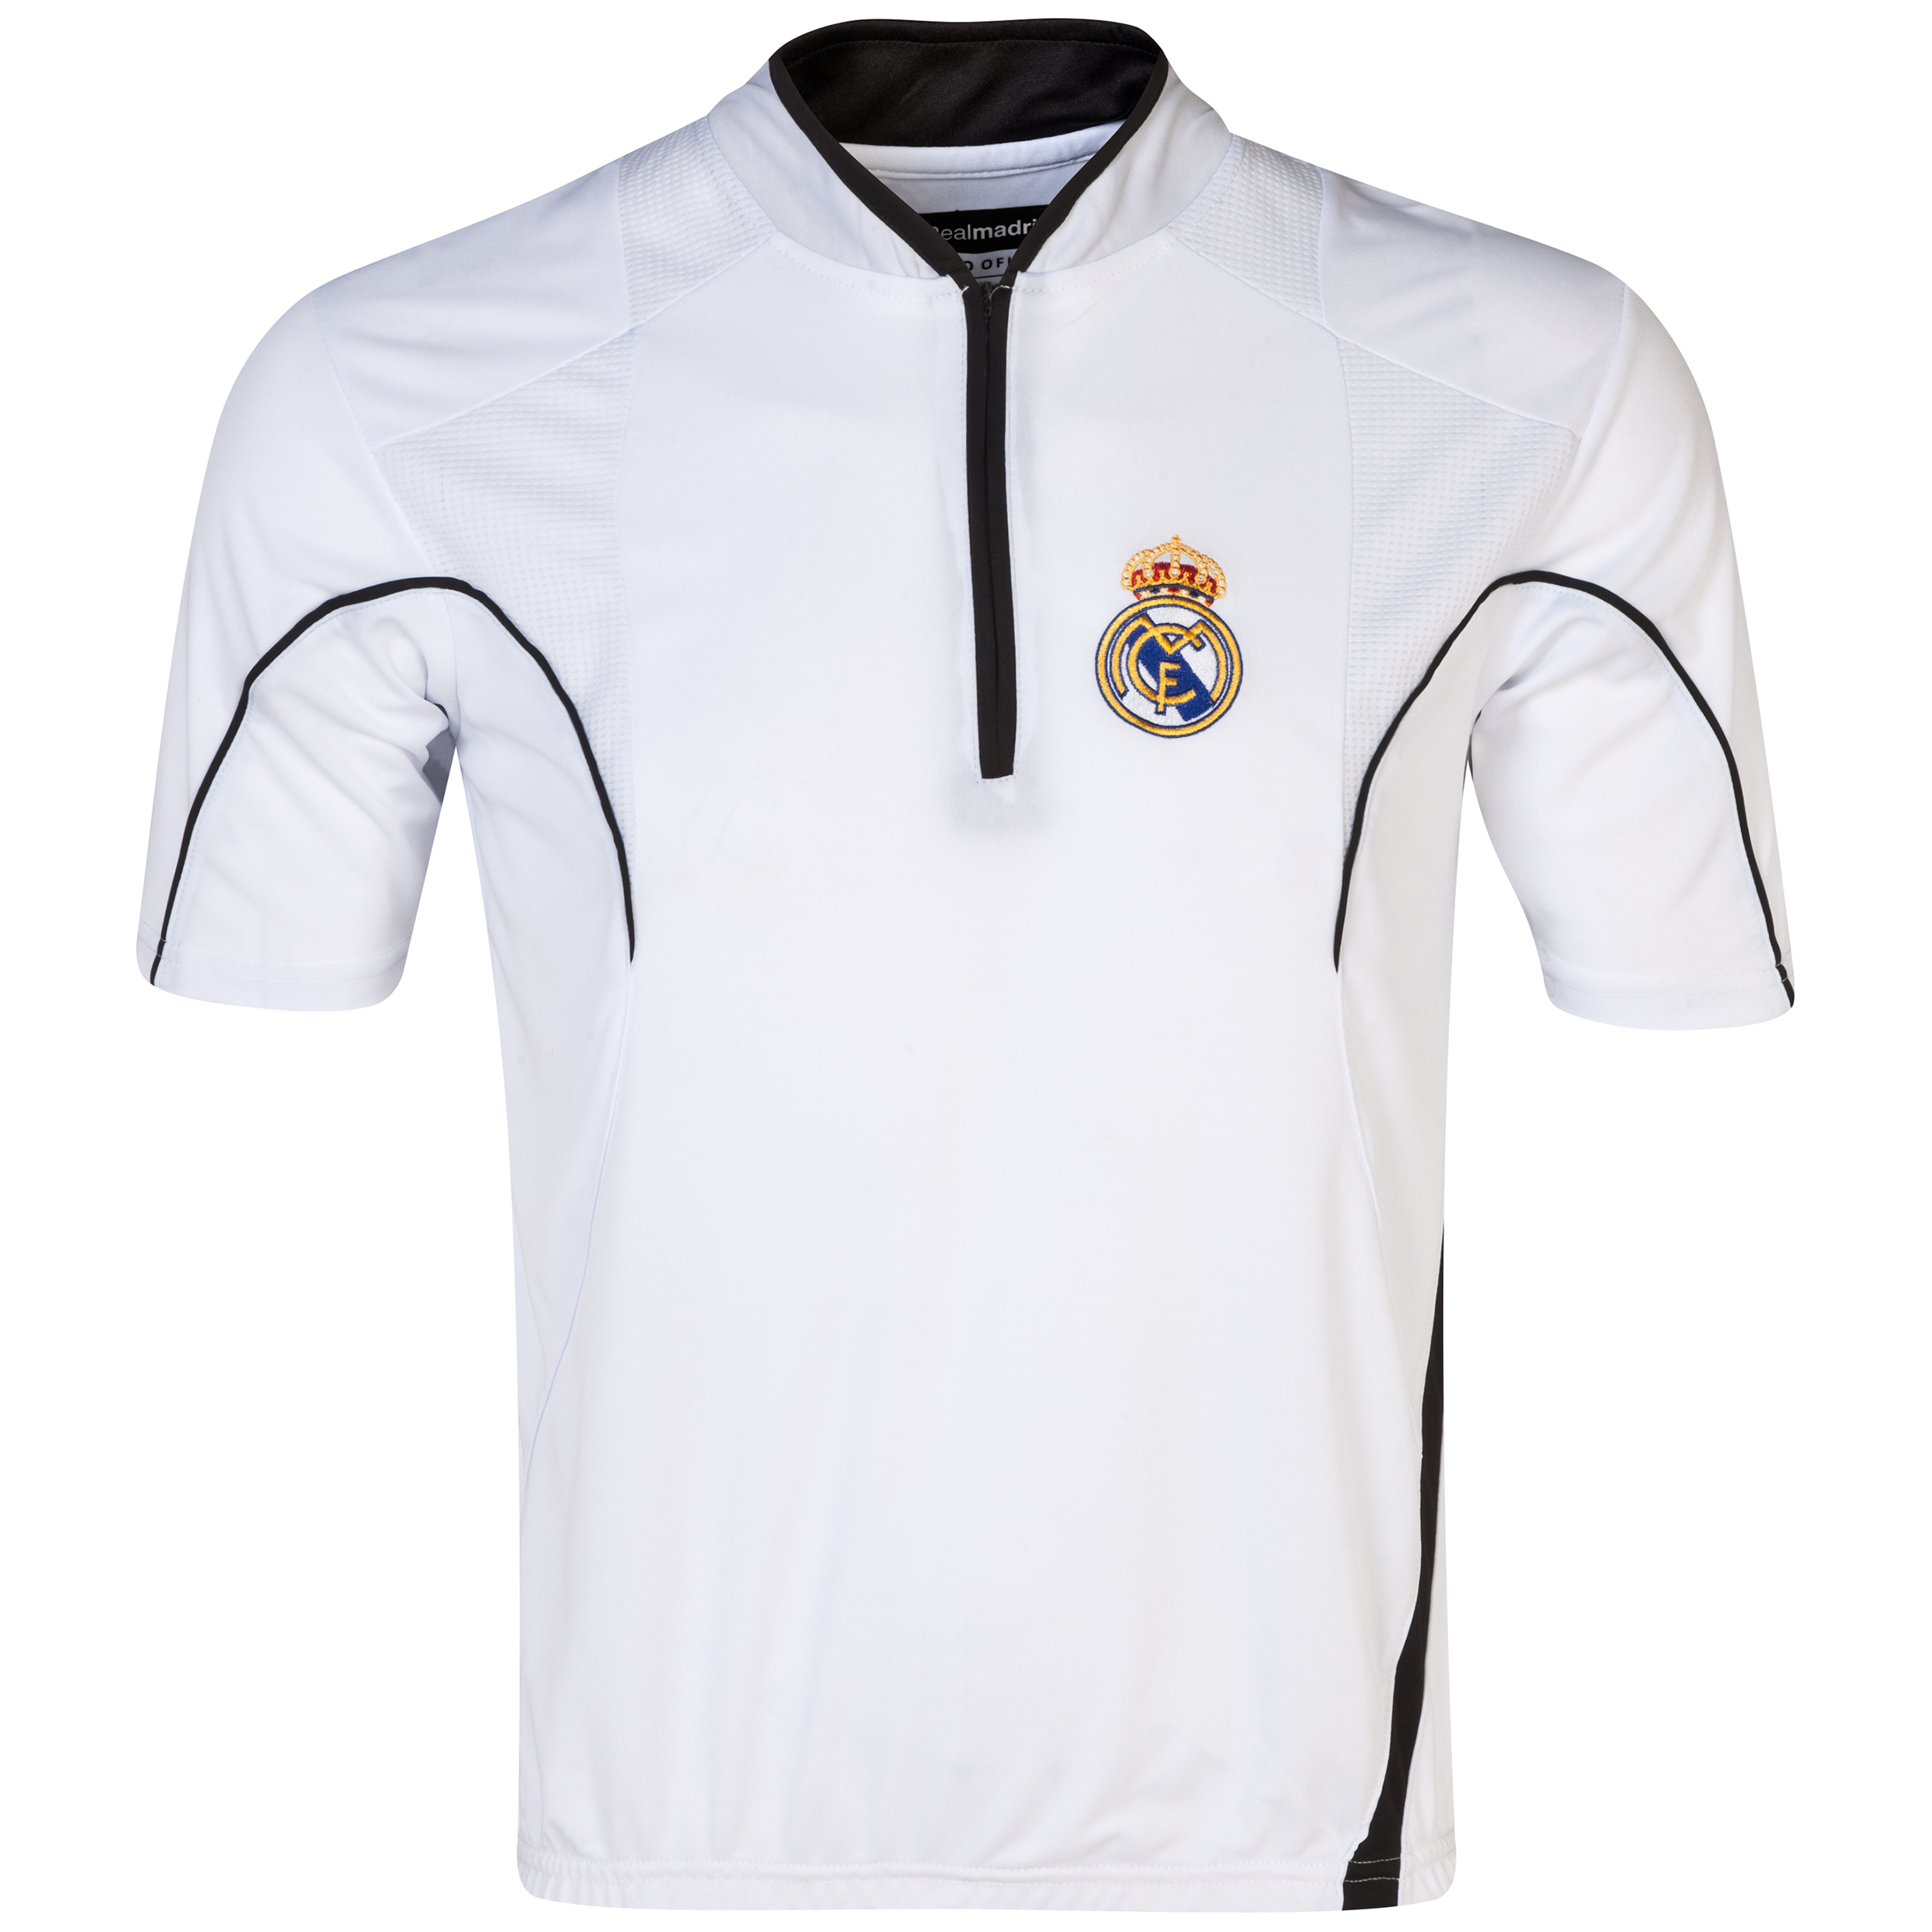 Real Madrid Classic Training T-Shirt - Mens White